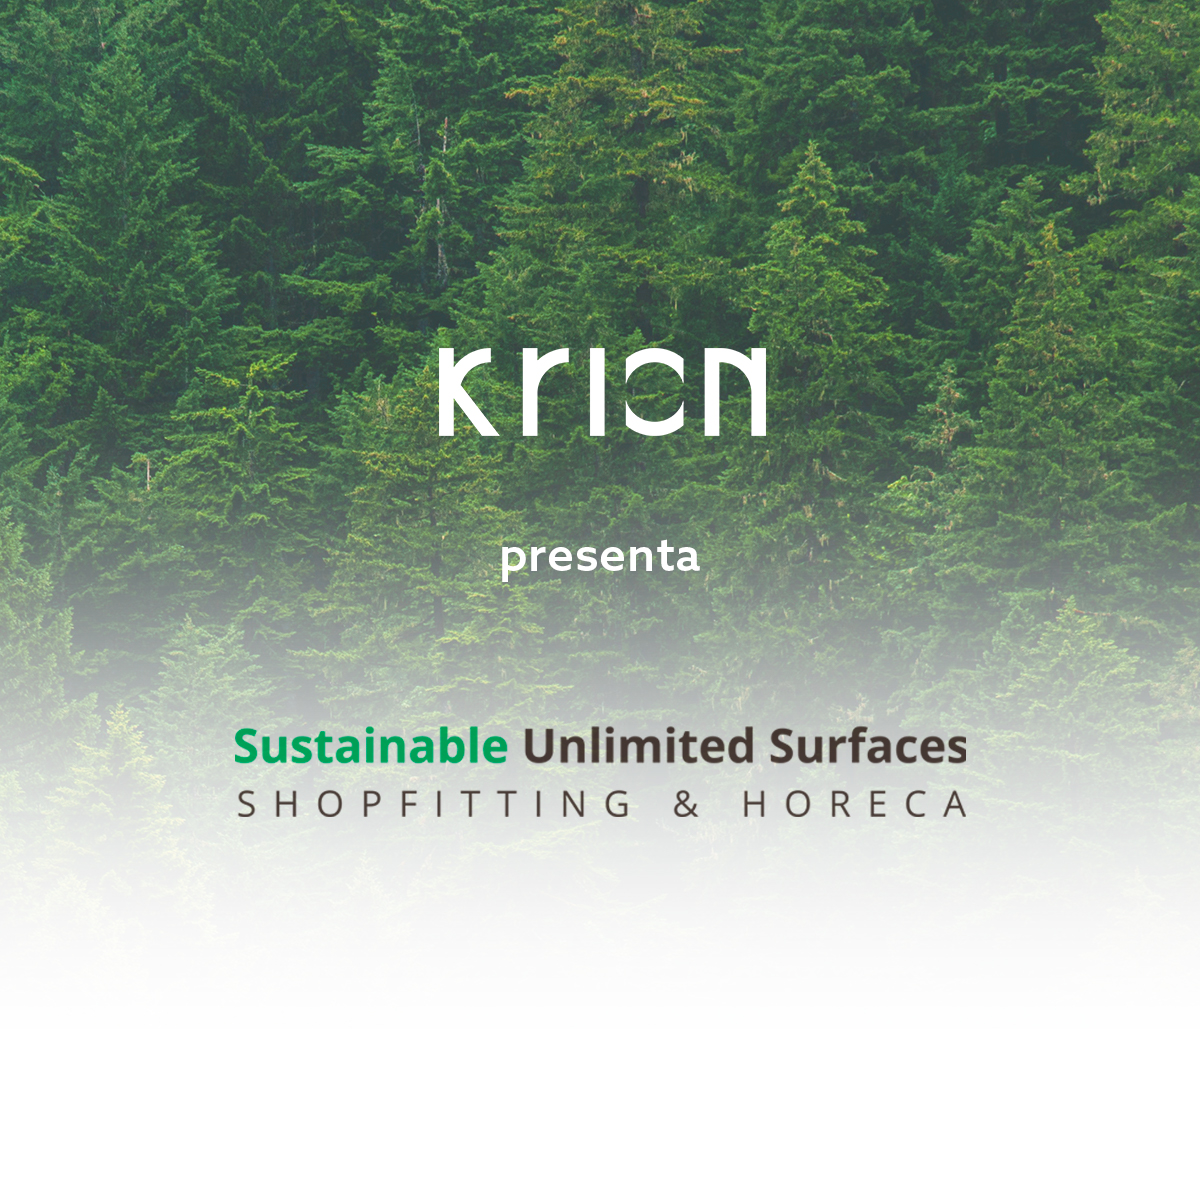 Presentamos Krion Sustainable Unlimited Surfaces, la línea más eco de Krion